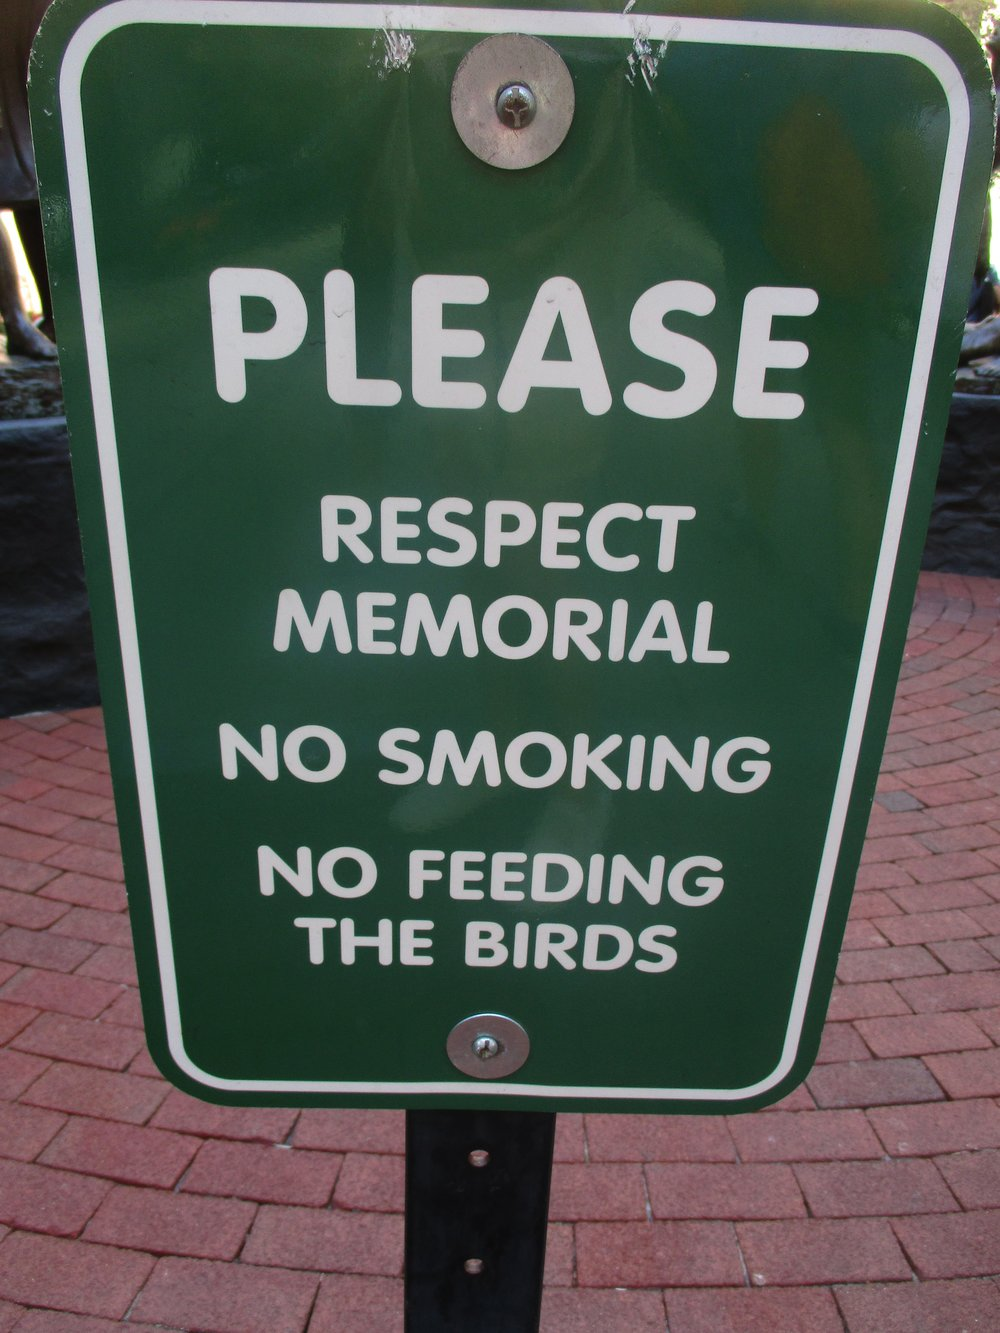 Etiquetteer wishes it wasn't necessary for signs such as these to be posted. Everyone should know how to behave at a memorial, and want to behave that way.